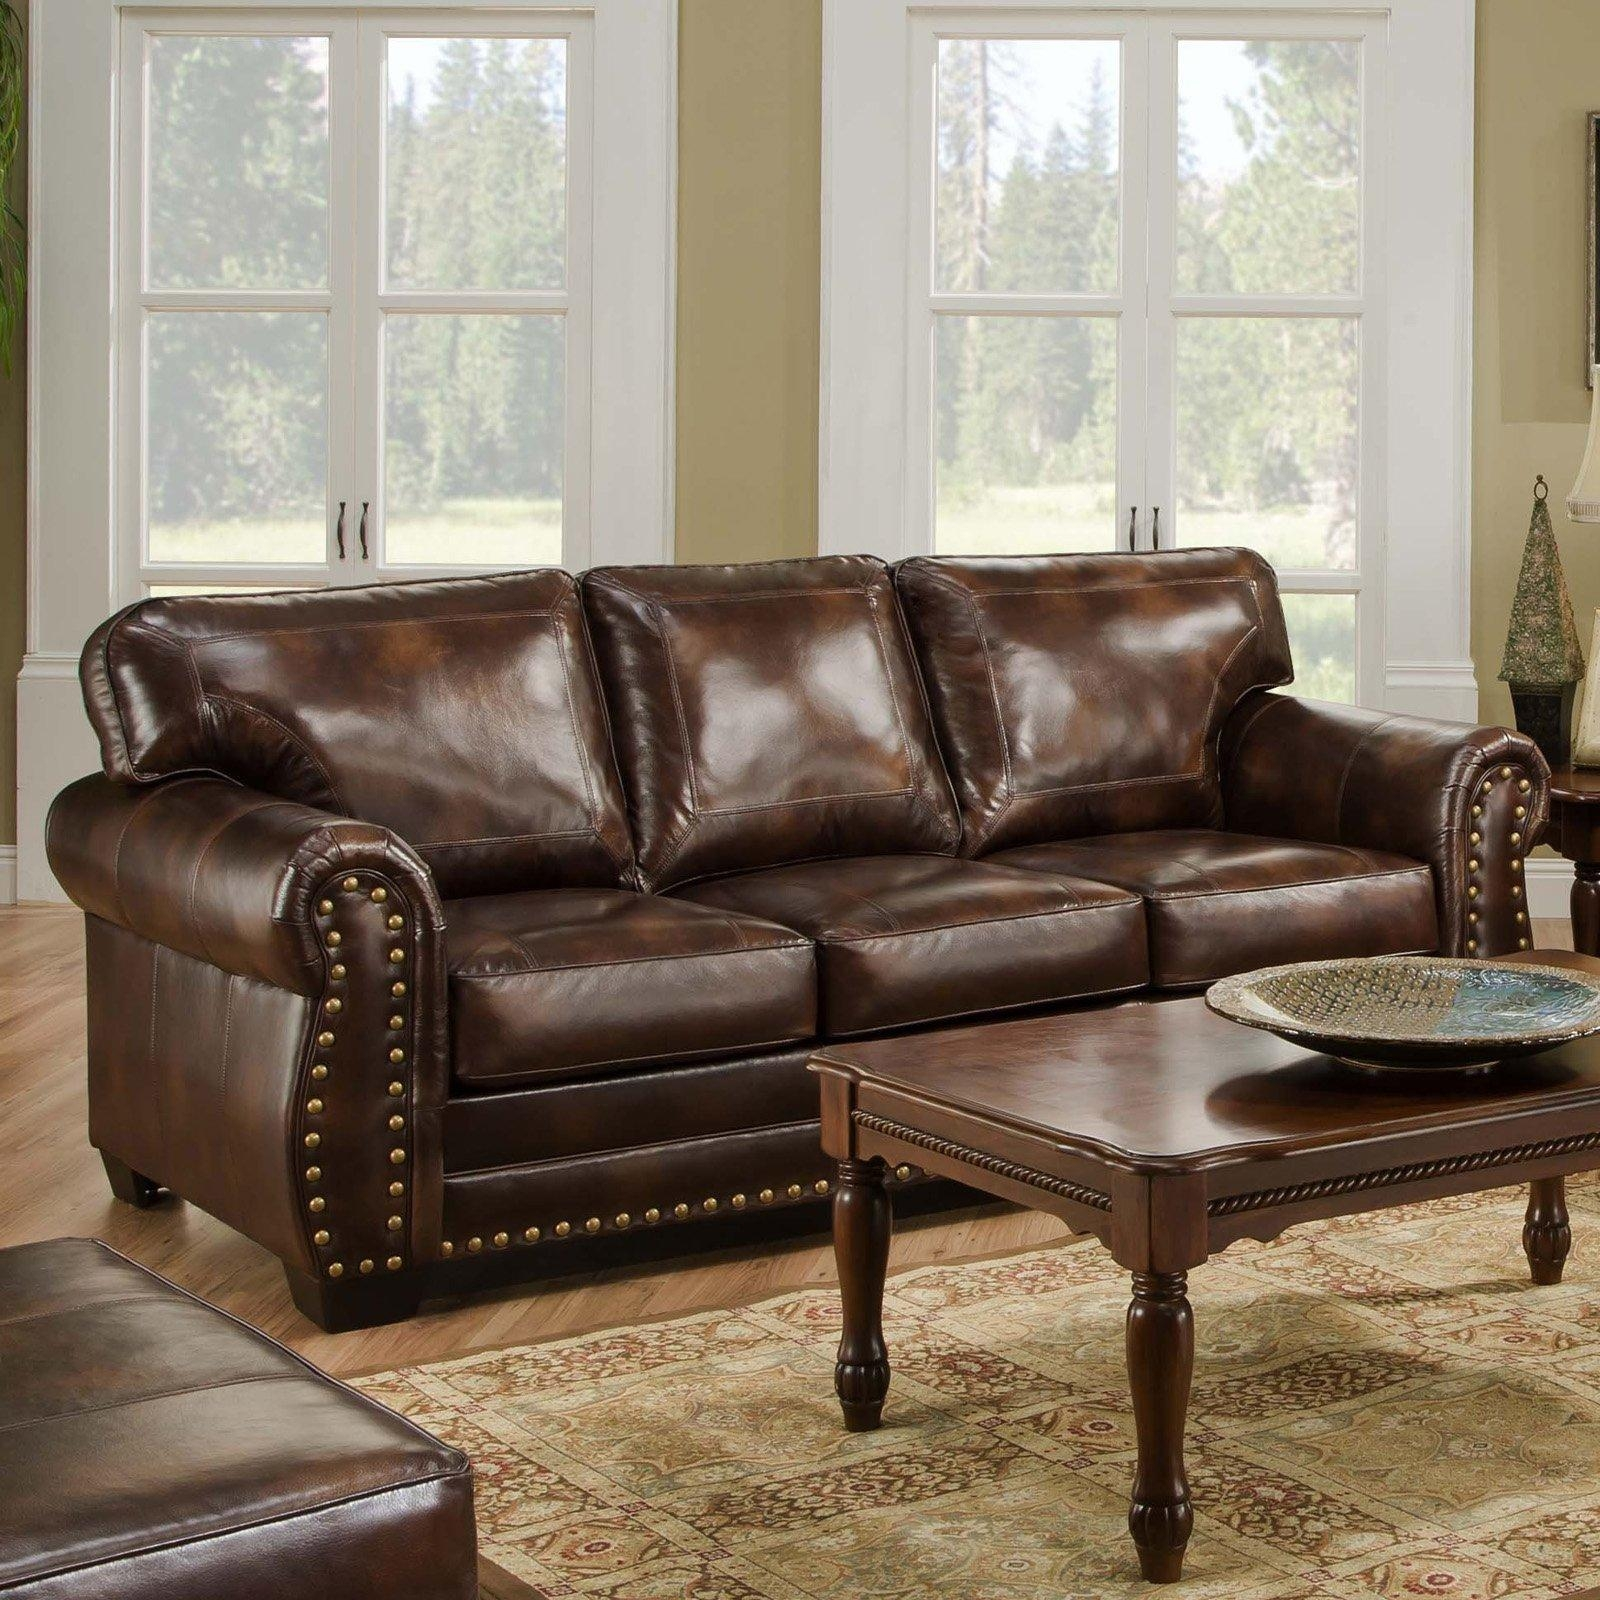 Simmons Vintage Encore Leather Sofa With Nail Heads | Hayneedle Throughout Simmons Leather Sofas And Loveseats (Image 13 of 20)